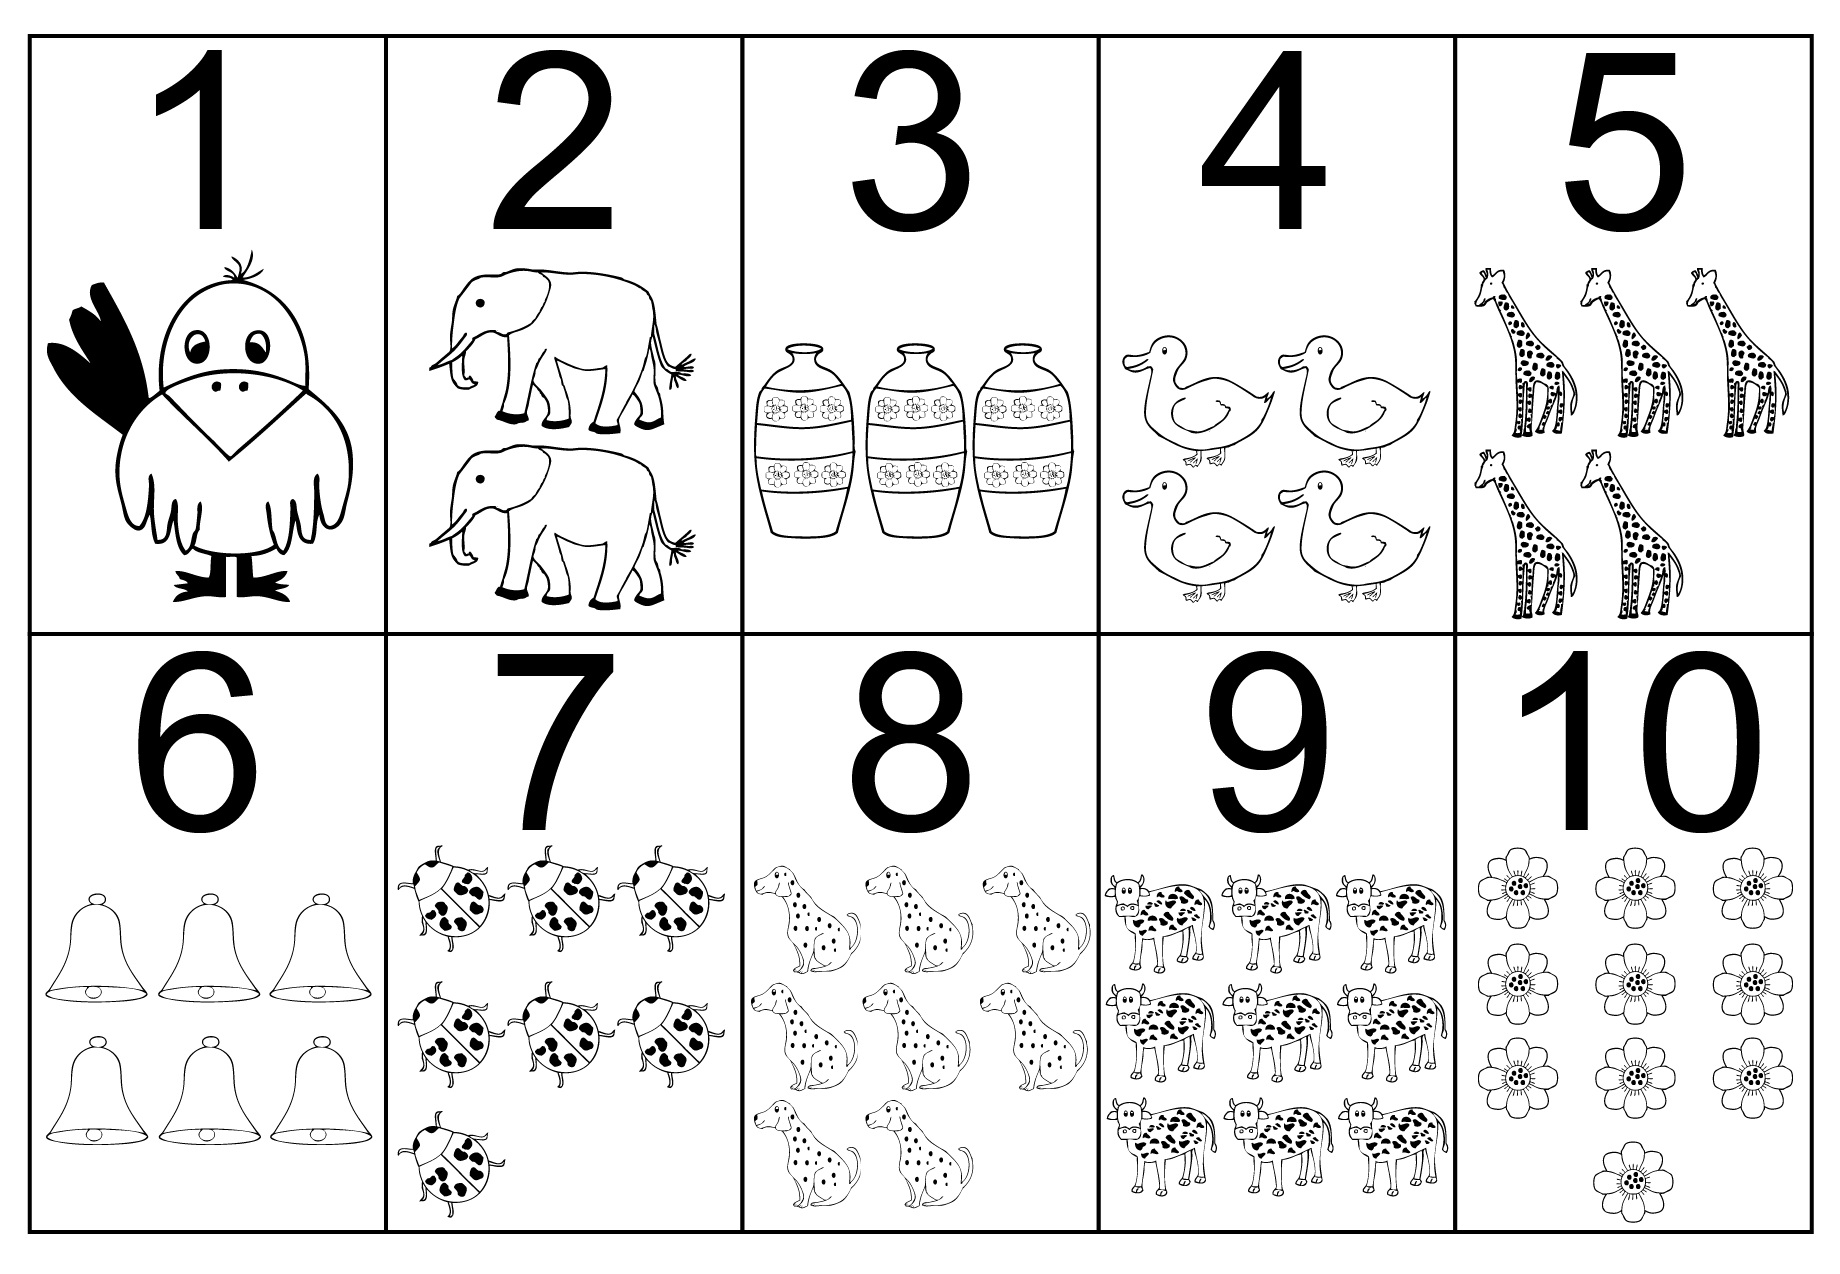 coloring number pages - Coloring Pages With Numbers